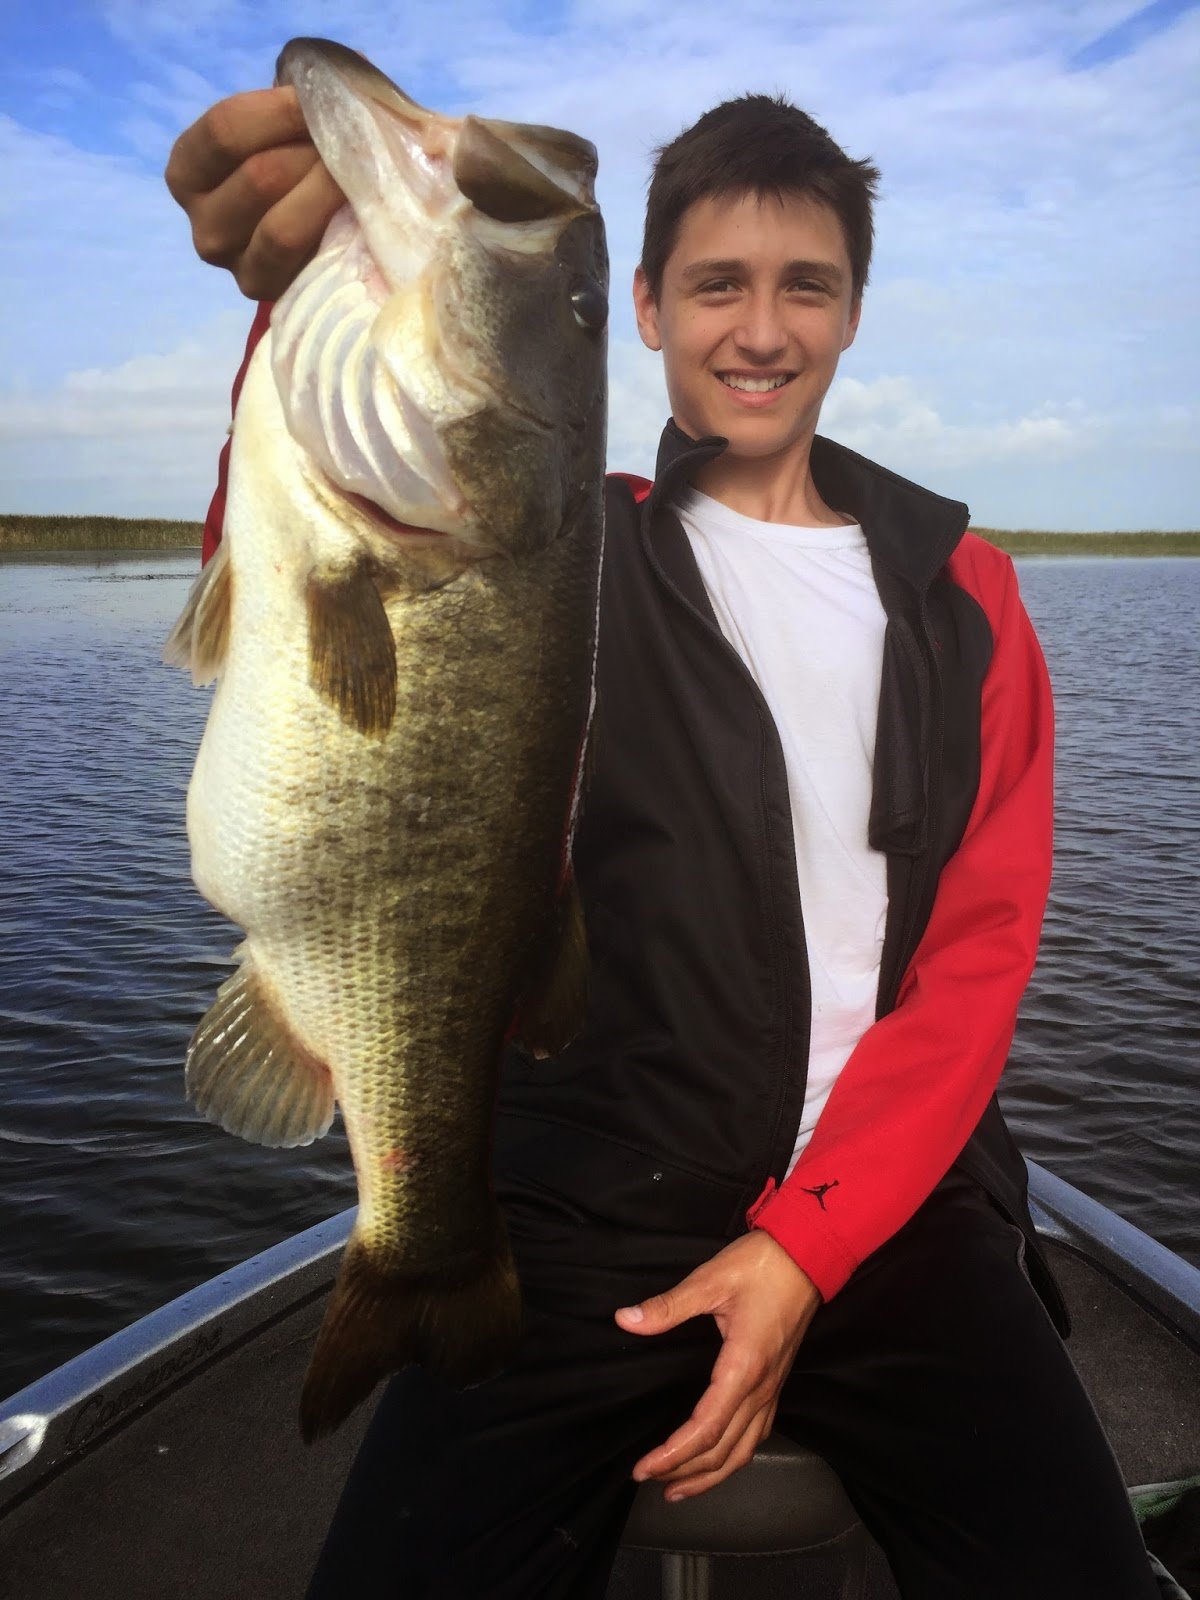 April and big bass on lake okeechobee lake okeechobee for Lake okeechobee fishing guides